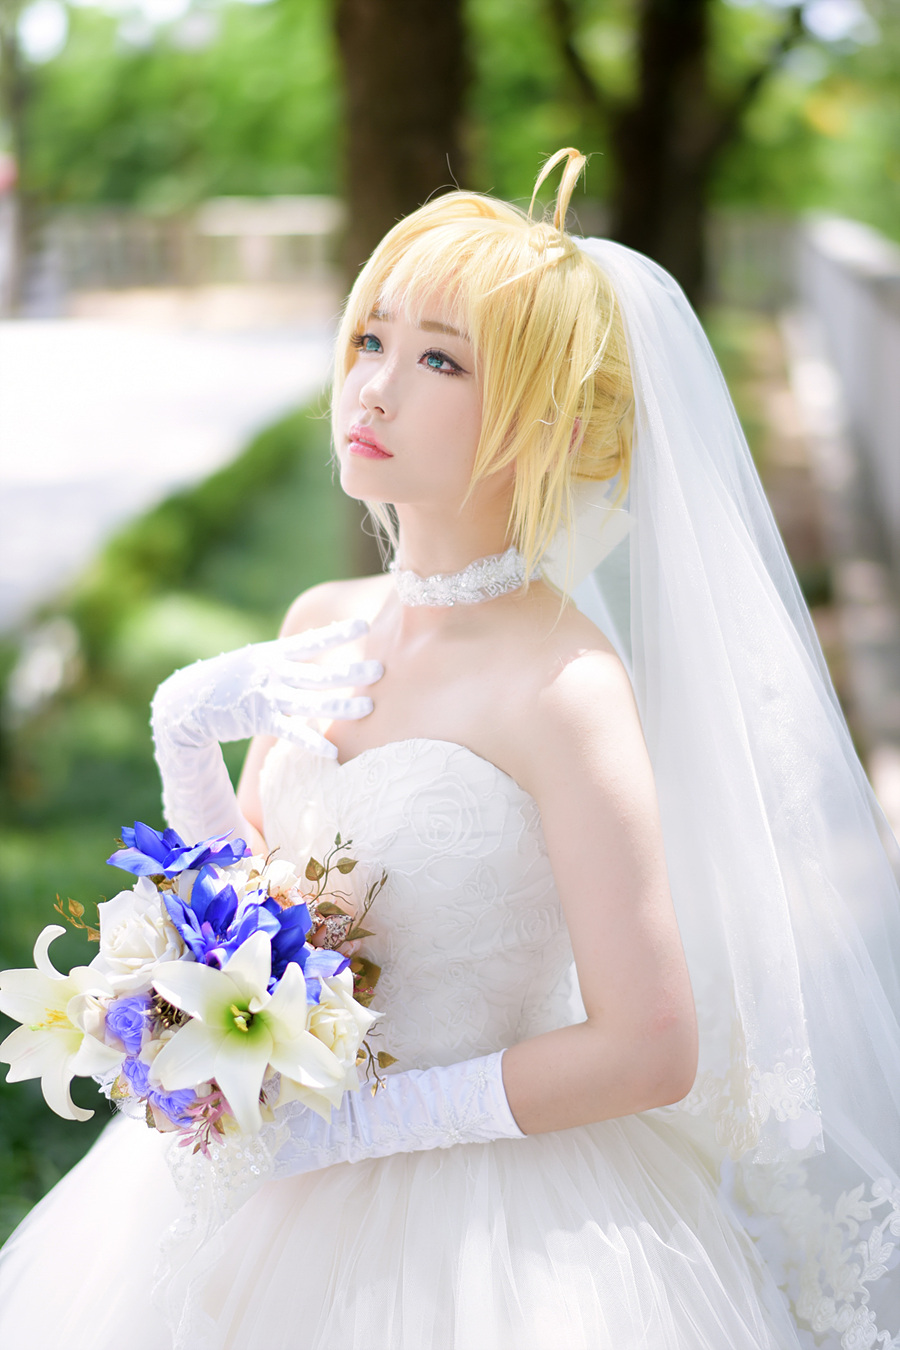 Stay Wedding Dress